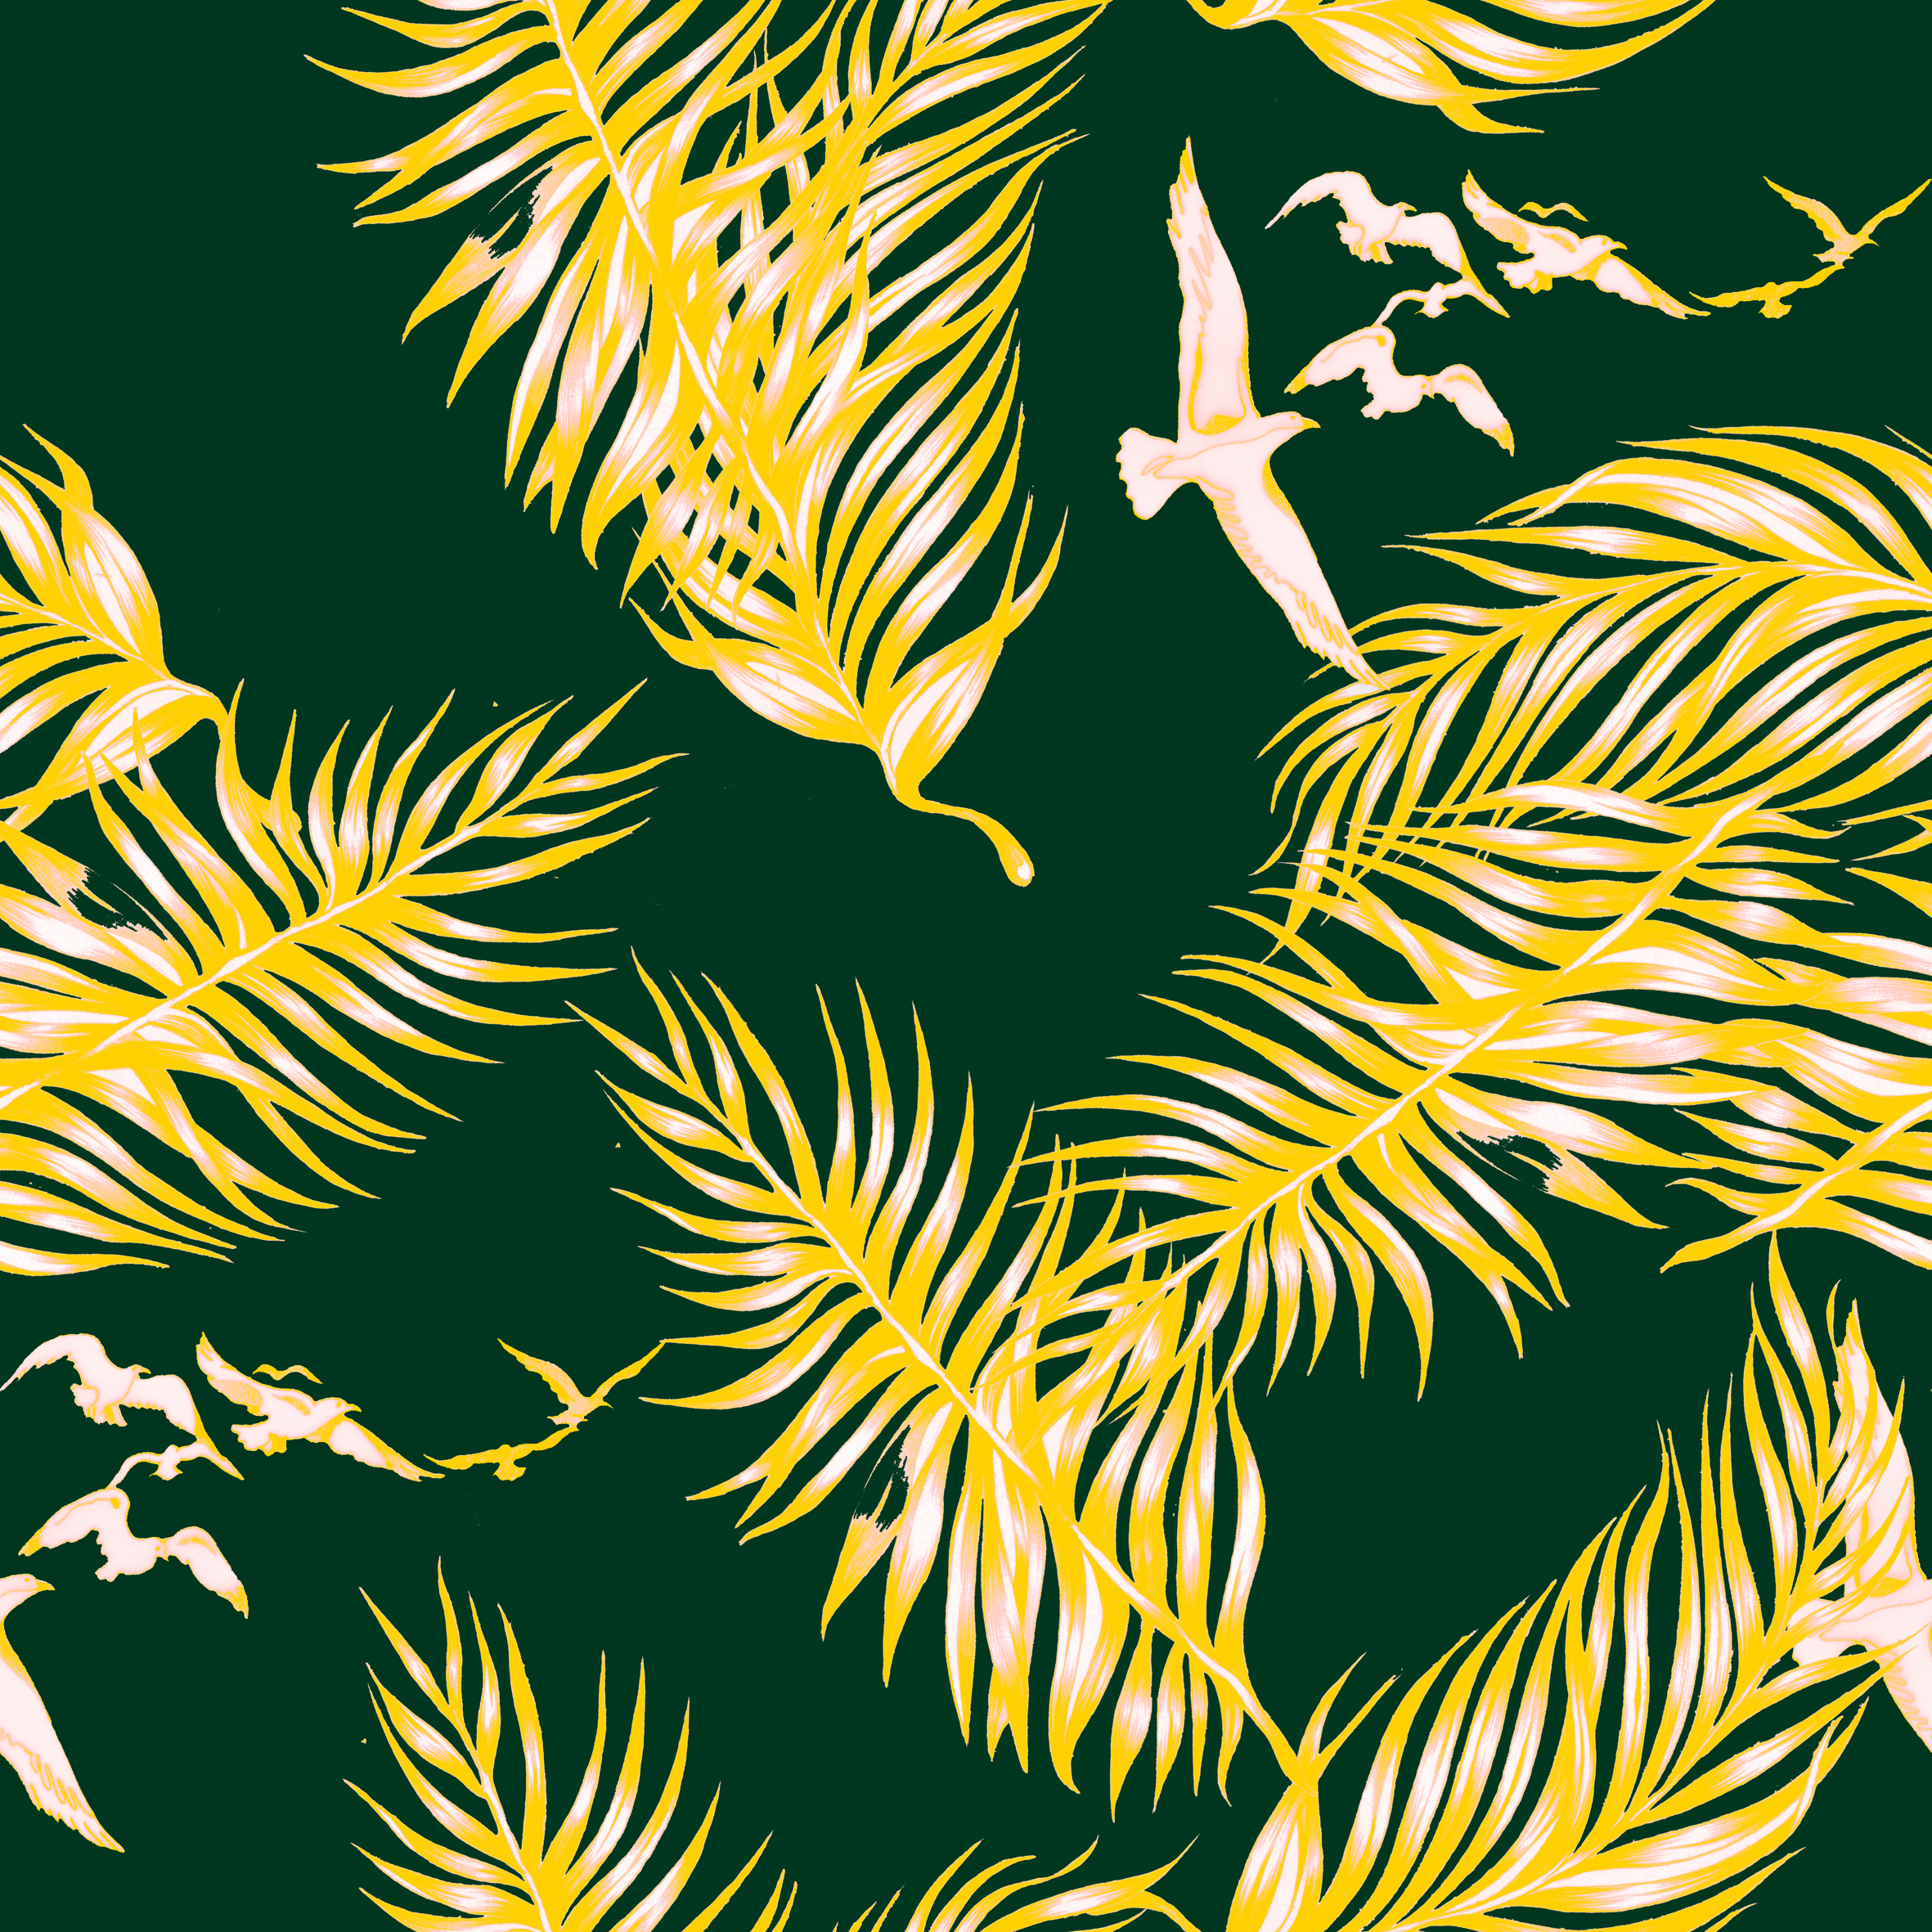 Palm pattern seamless 20 x 20_Green.jpg